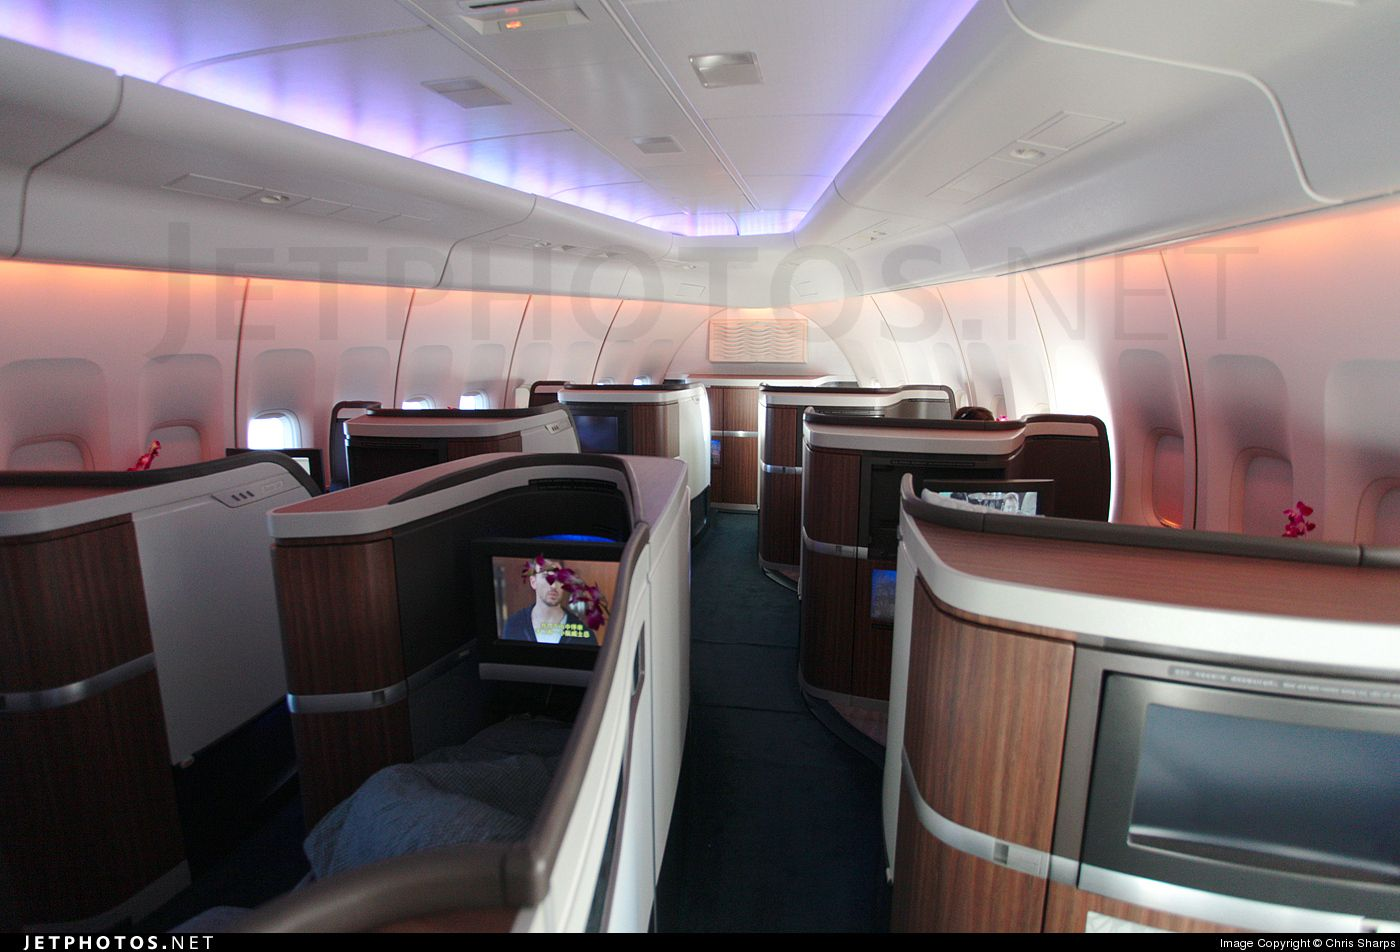 Cathay Pacific Boeing 747 first class